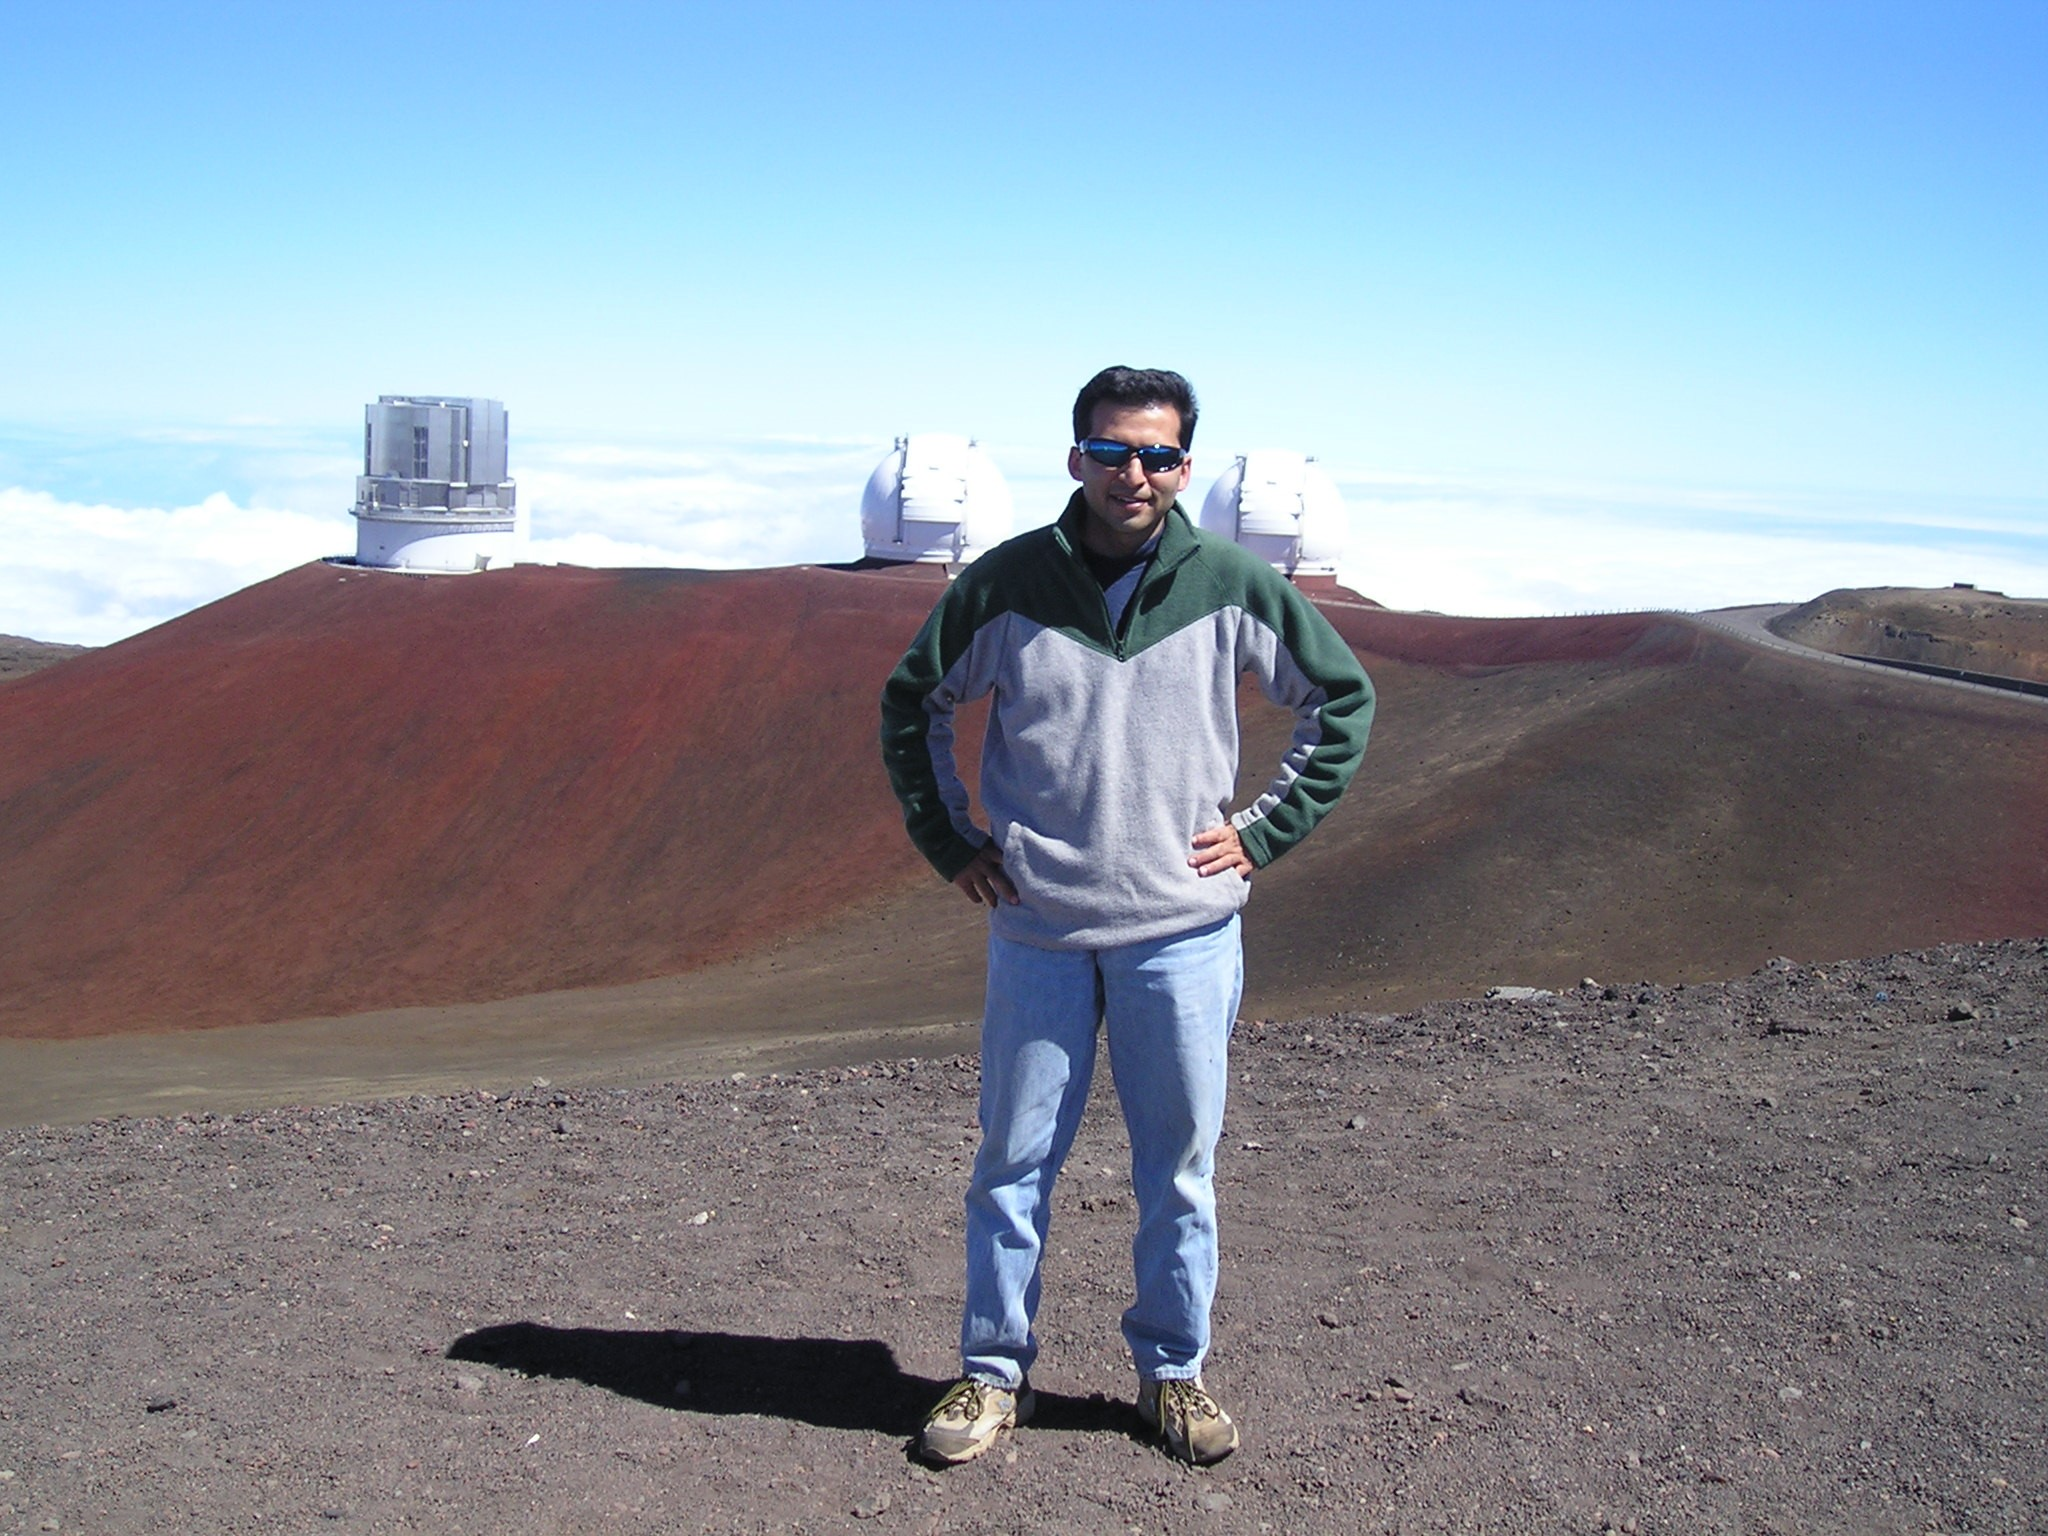 June 2005: In front of the twin Keck Observatories and Subaru Observatory on top of Mauna Kea, Hawaii. Salman was using the James Clark Maxwell Telescope (JCMT) on the summit.